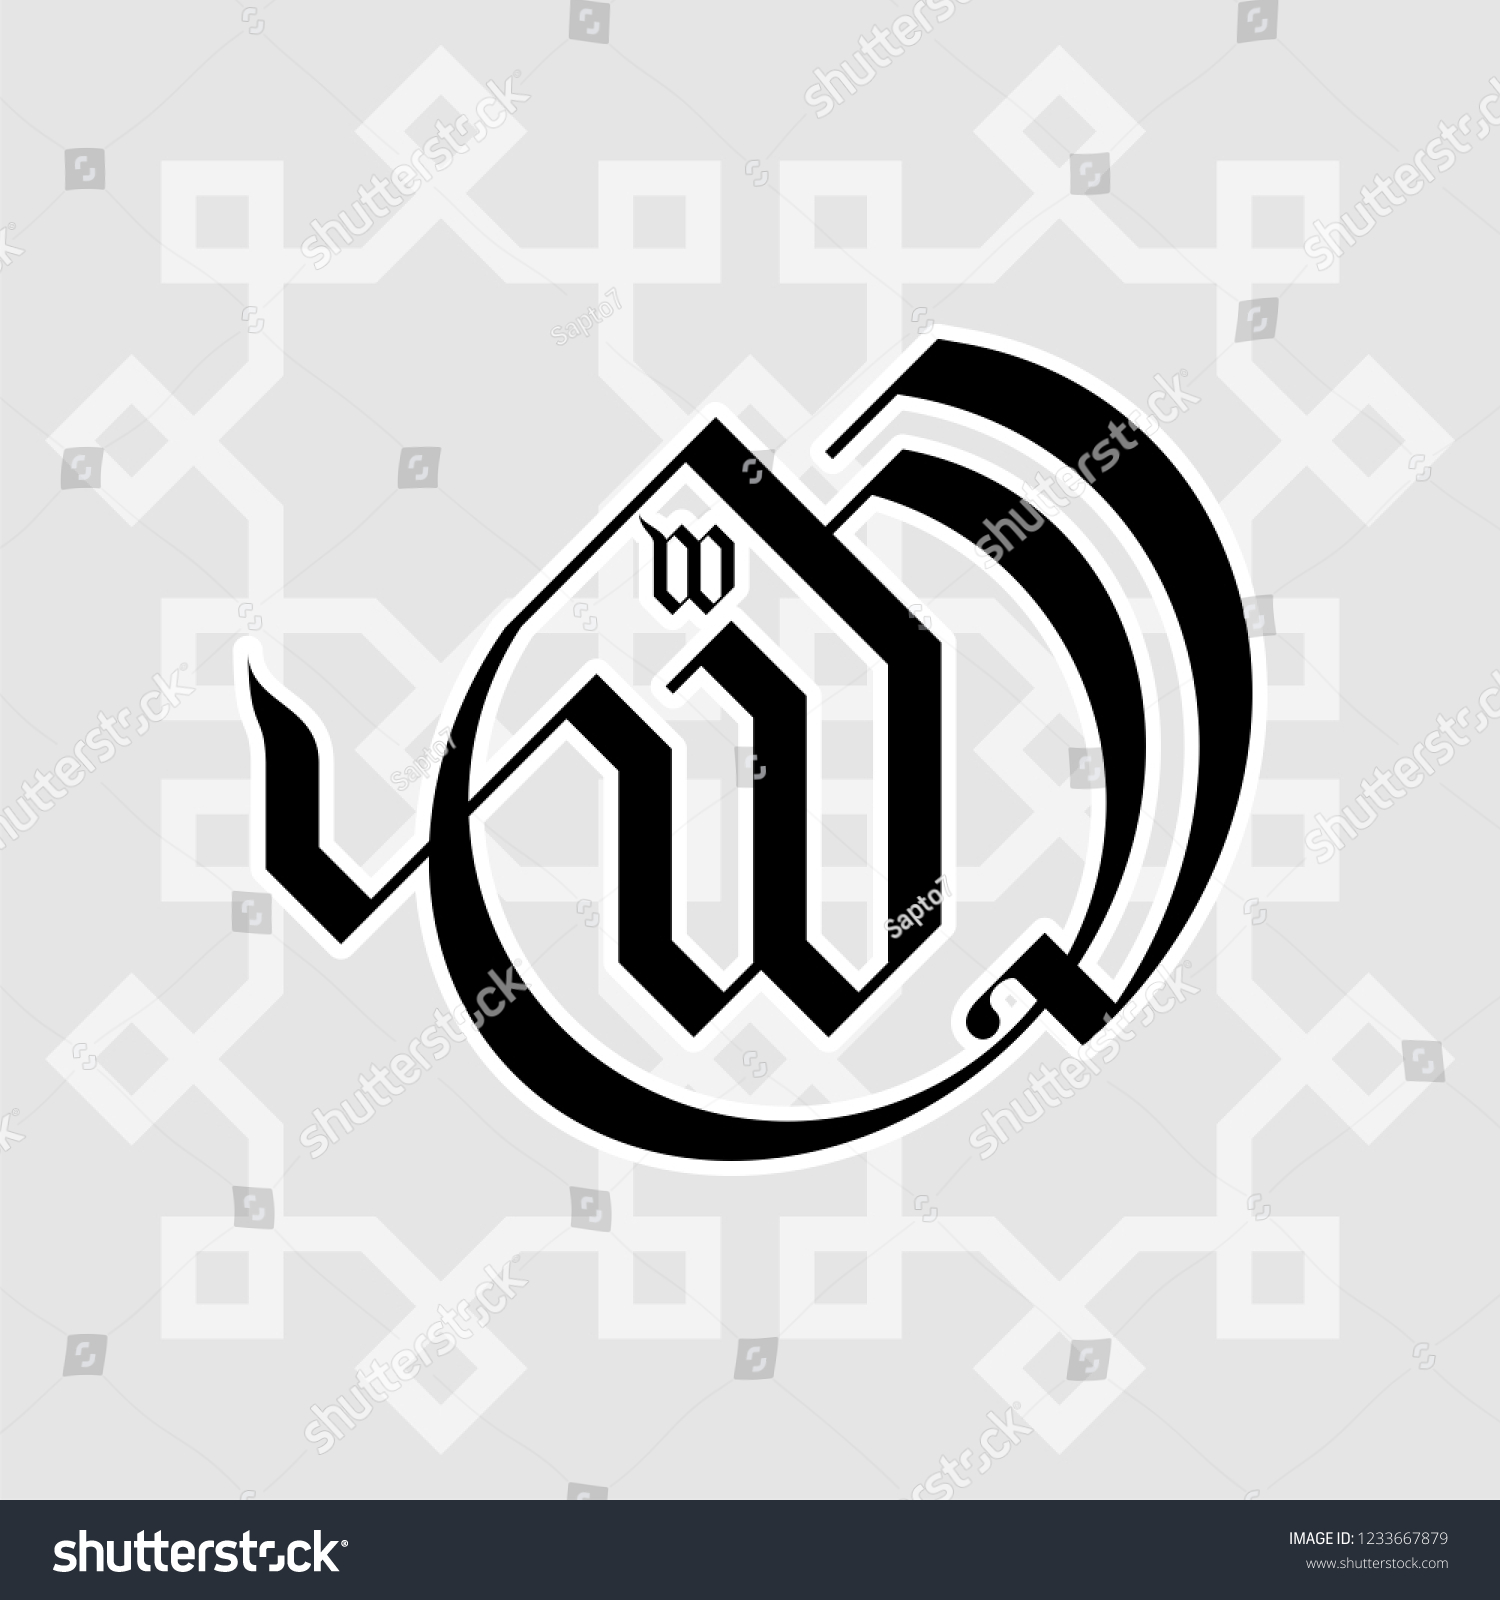 arabic calligraphy word allah gothic style stock vector royalty Anatomy of a House arabic calligraphy of the word allah in gothic style